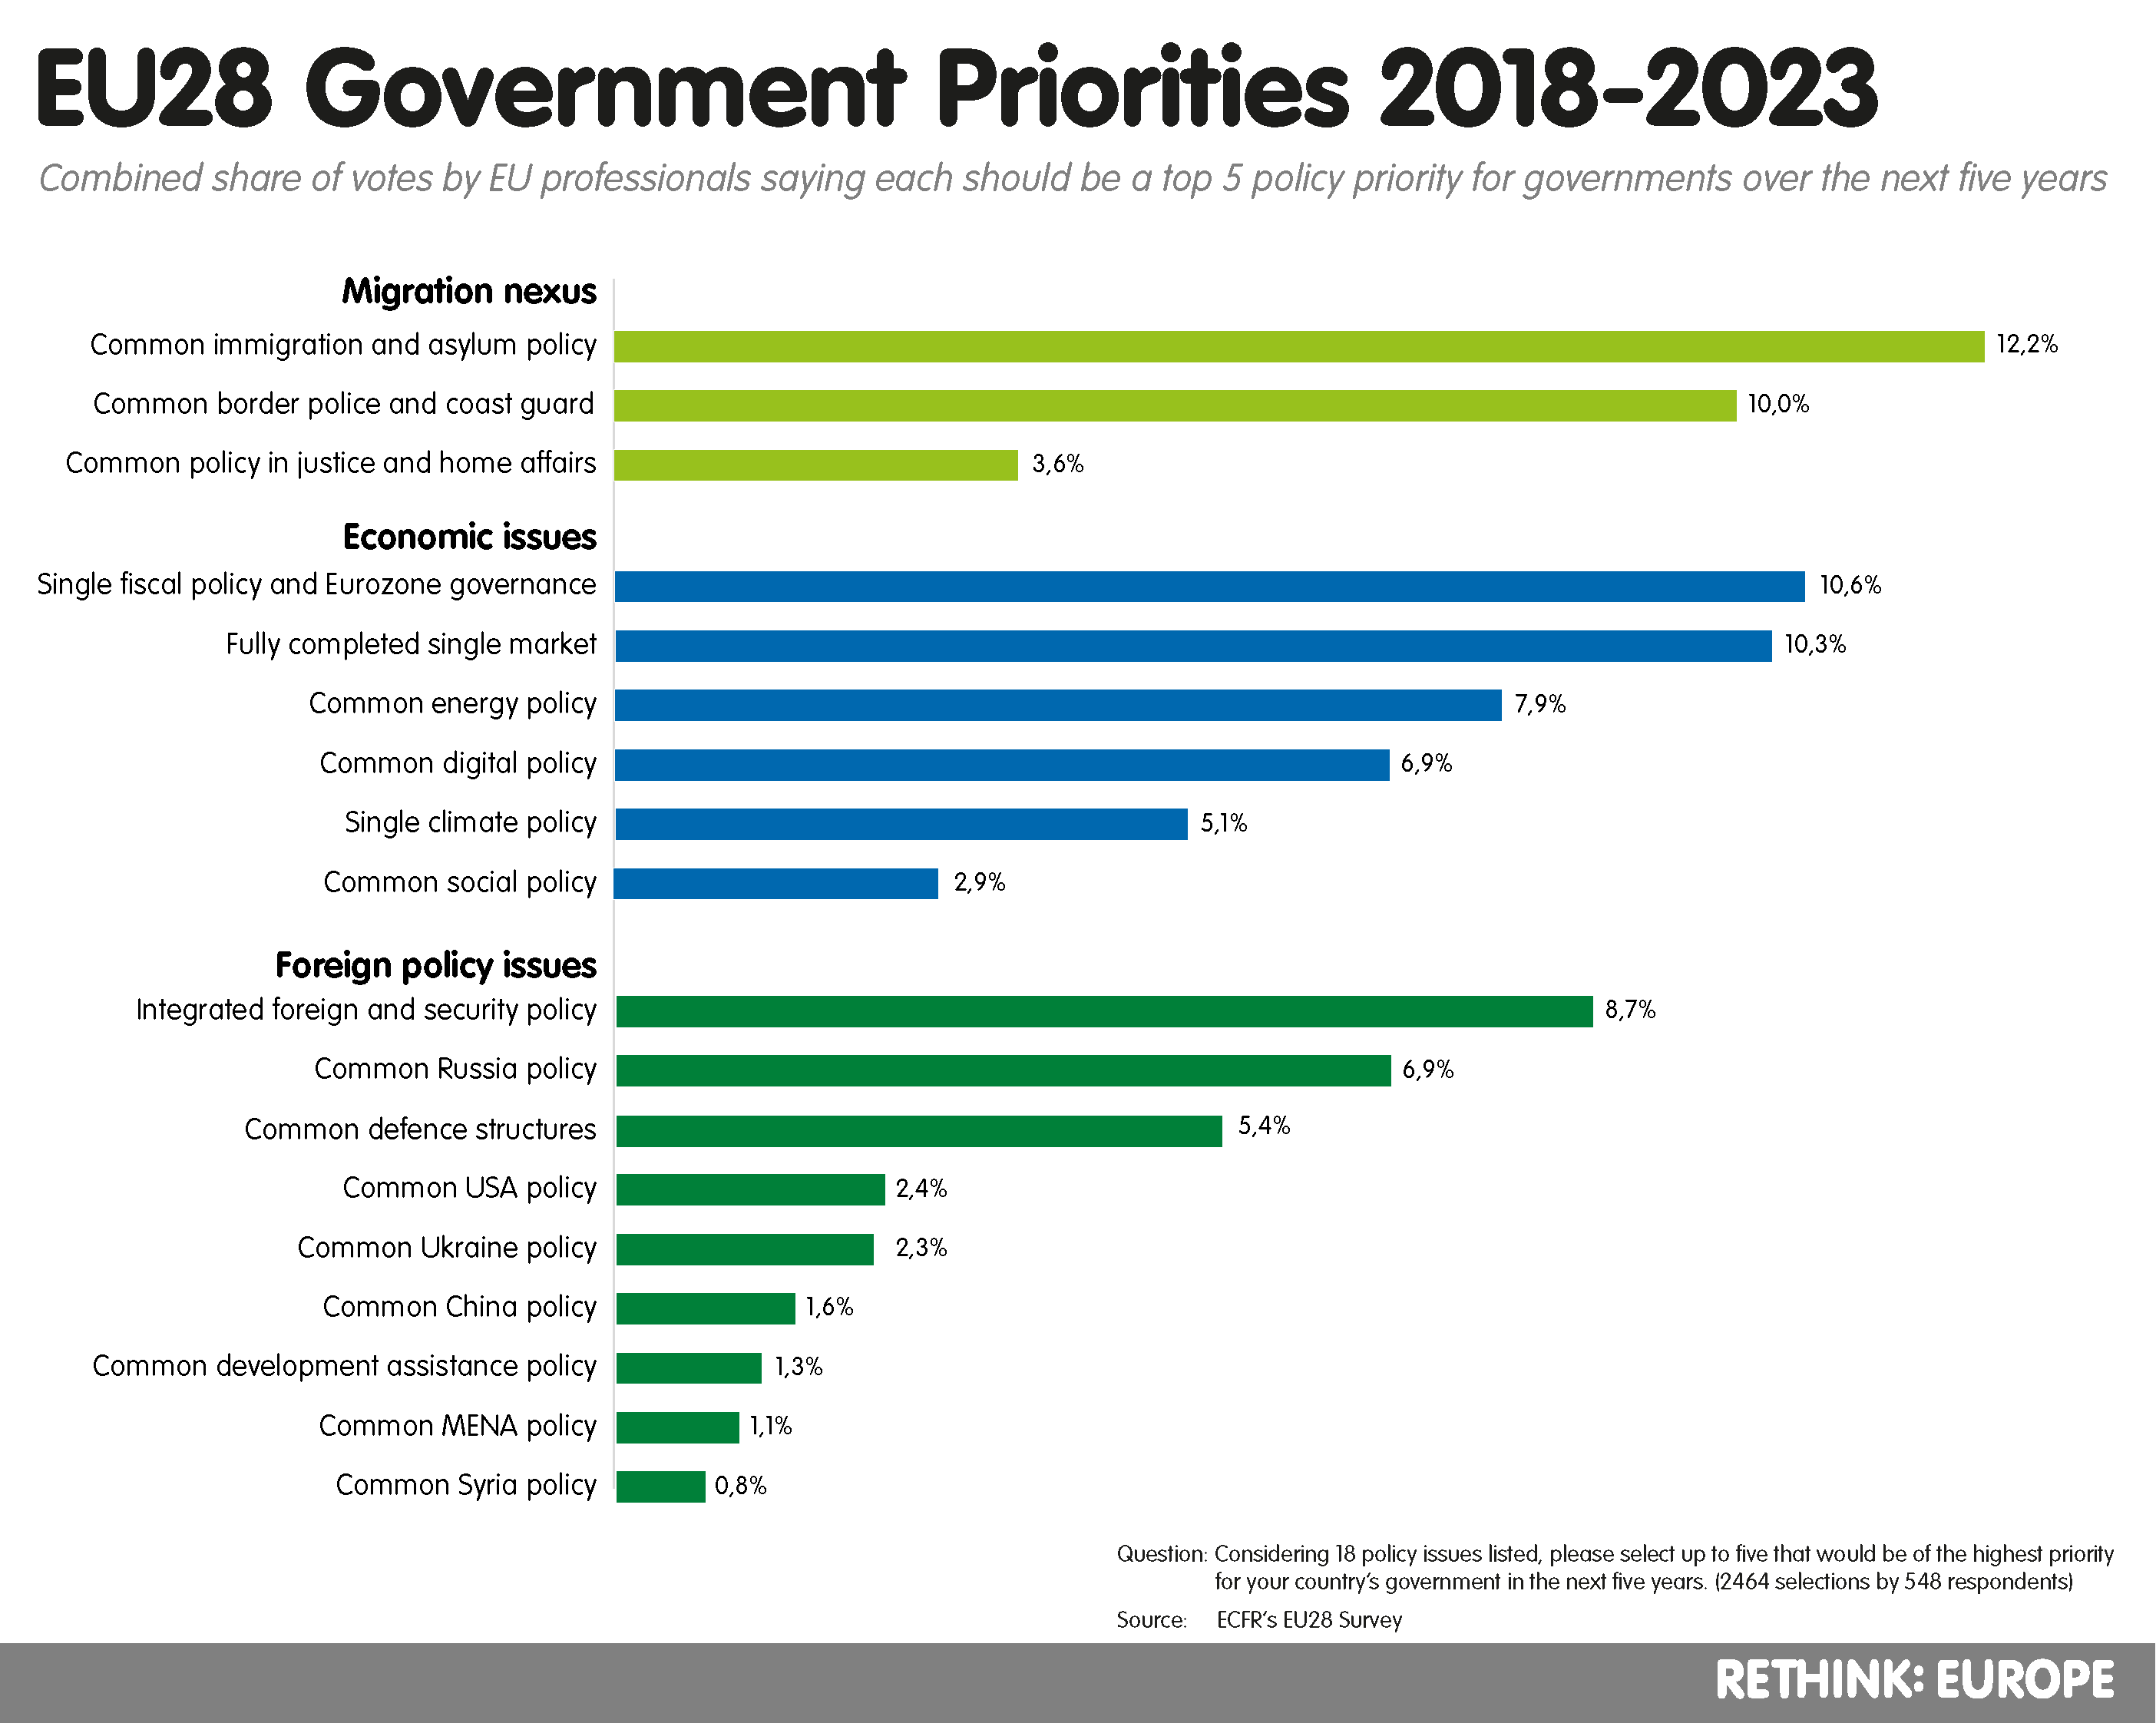 EU28 Survey - government priorities 2018-2023